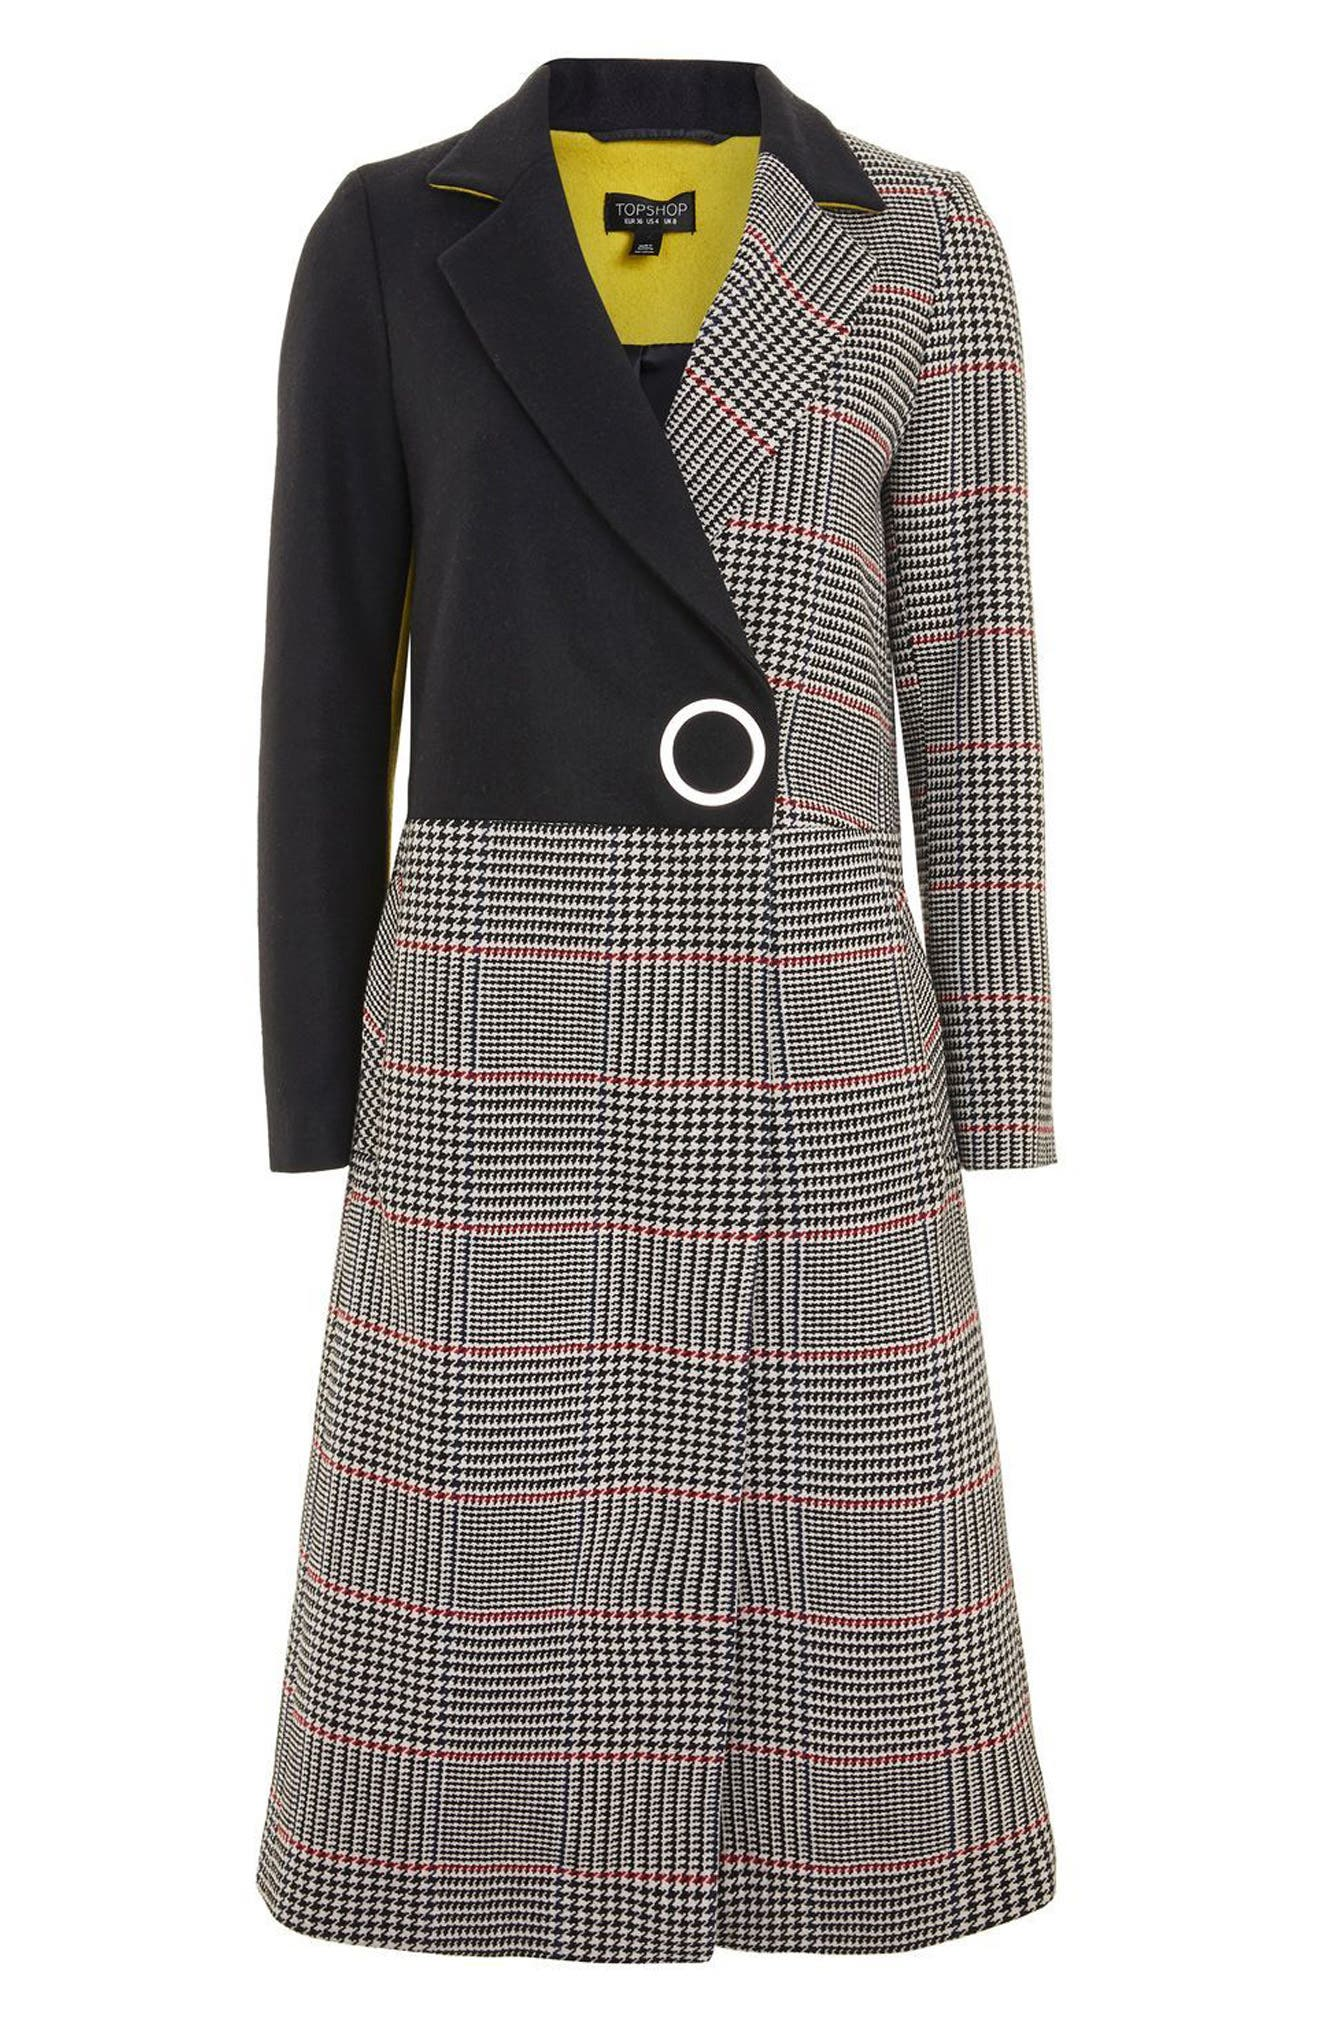 Colorblock Check Wool Blend Coat,                             Alternate thumbnail 4, color,                             Navy Blue Multi